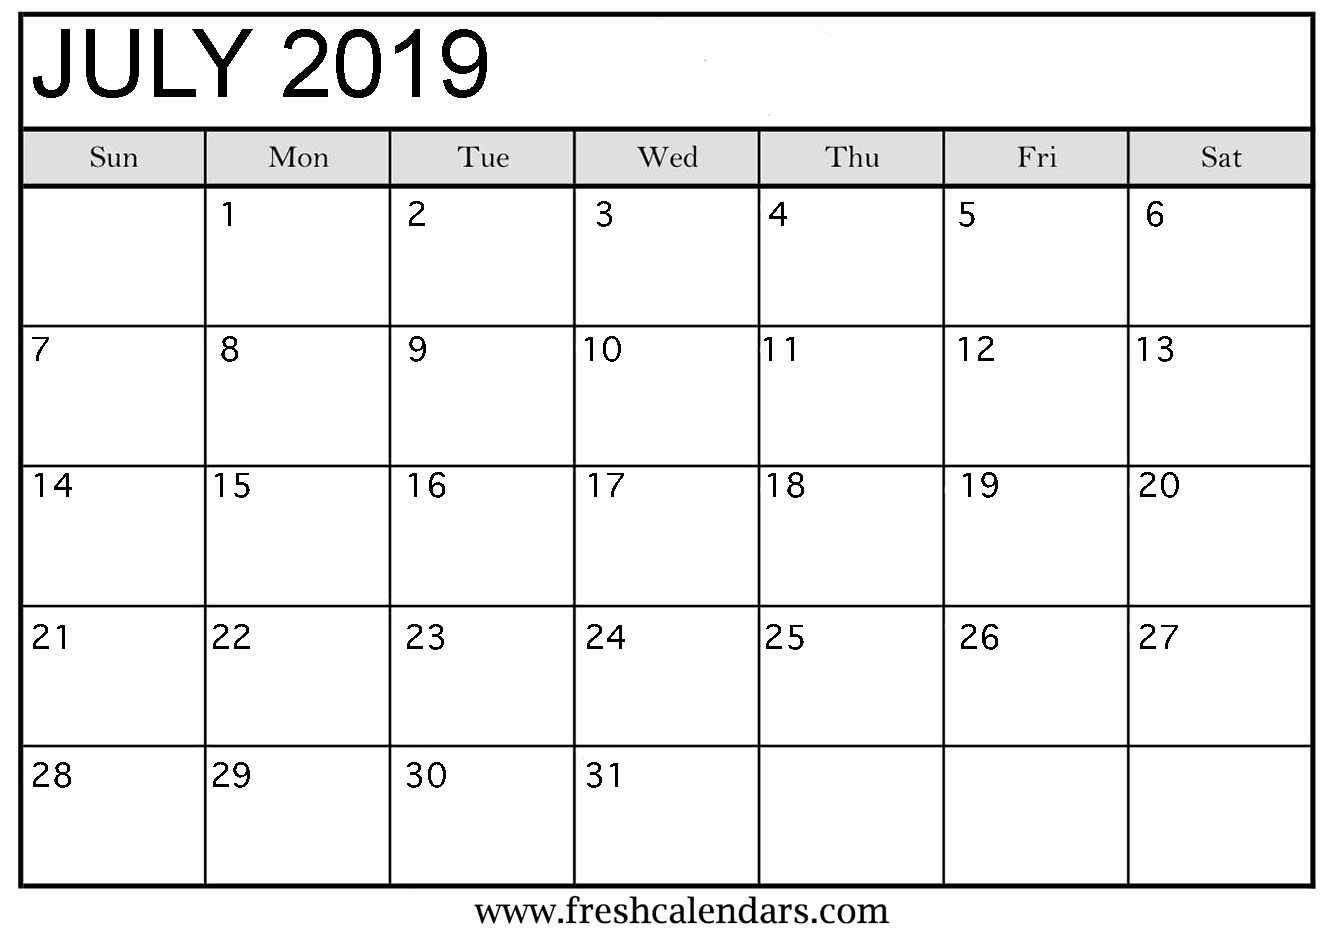 Microsoft Calendar Templates 2019 Inspirational July 2019 Calendar Printable Fresh Calendars